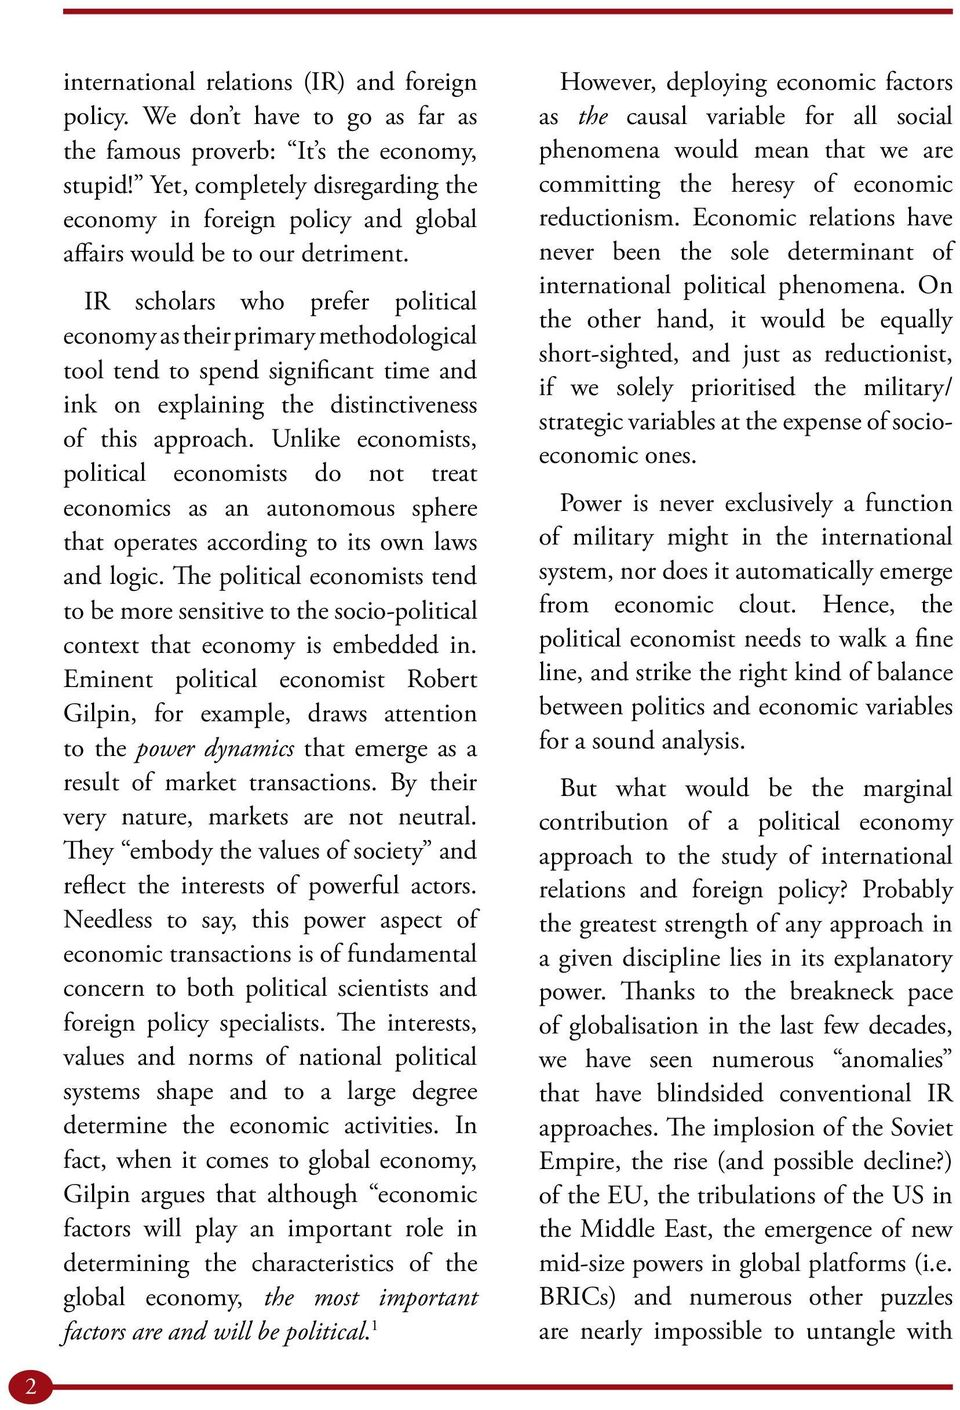 IR scholars who prefer political economy as their primary methodological tool tend to spend significant time and ink on explaining the distinctiveness of this approach.